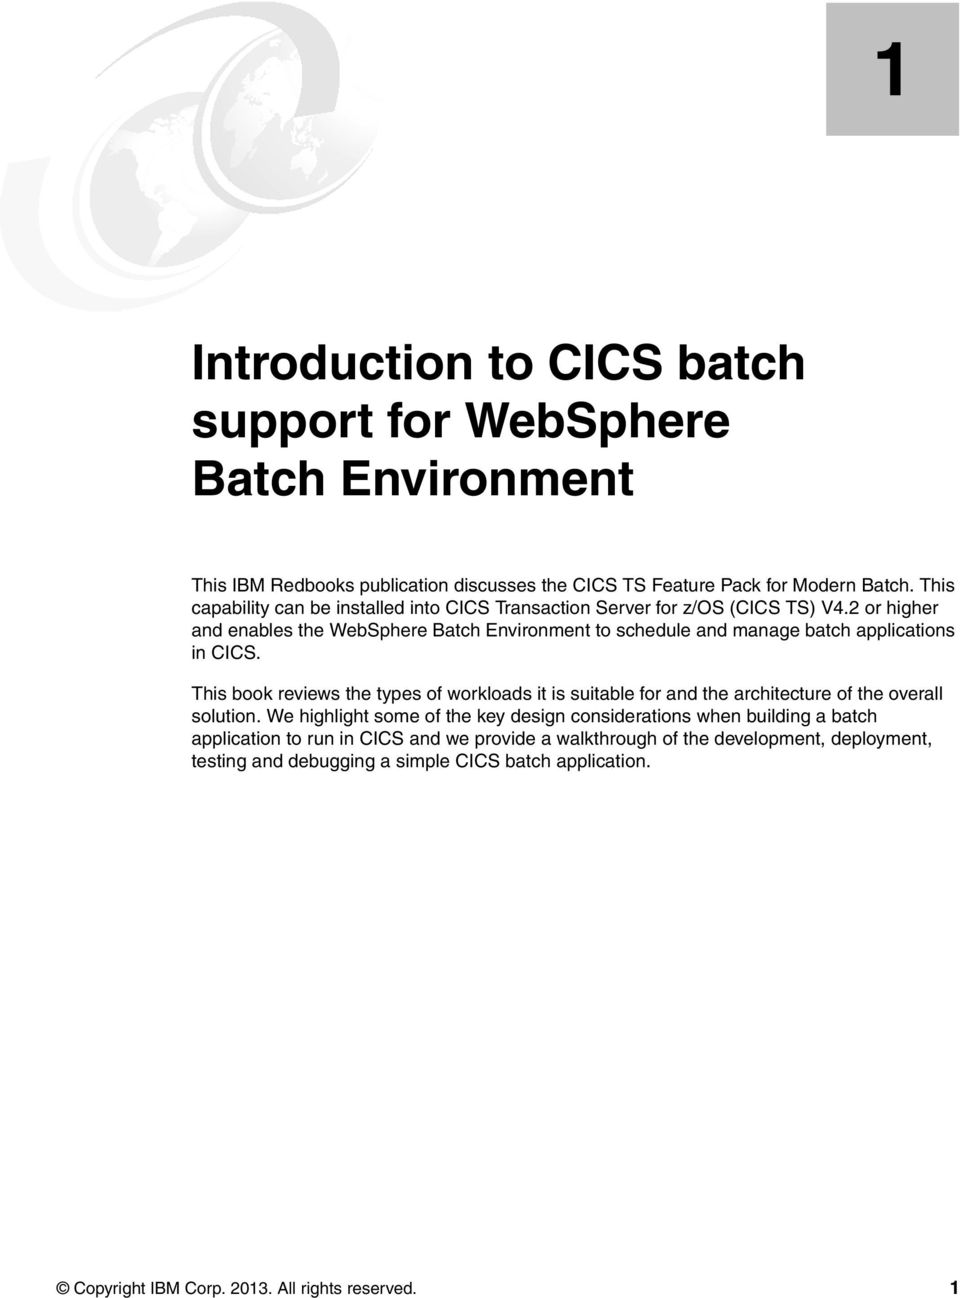 2 or higher and enables the WebSphere Batch Environment to schedule and manage batch applications in CICS.